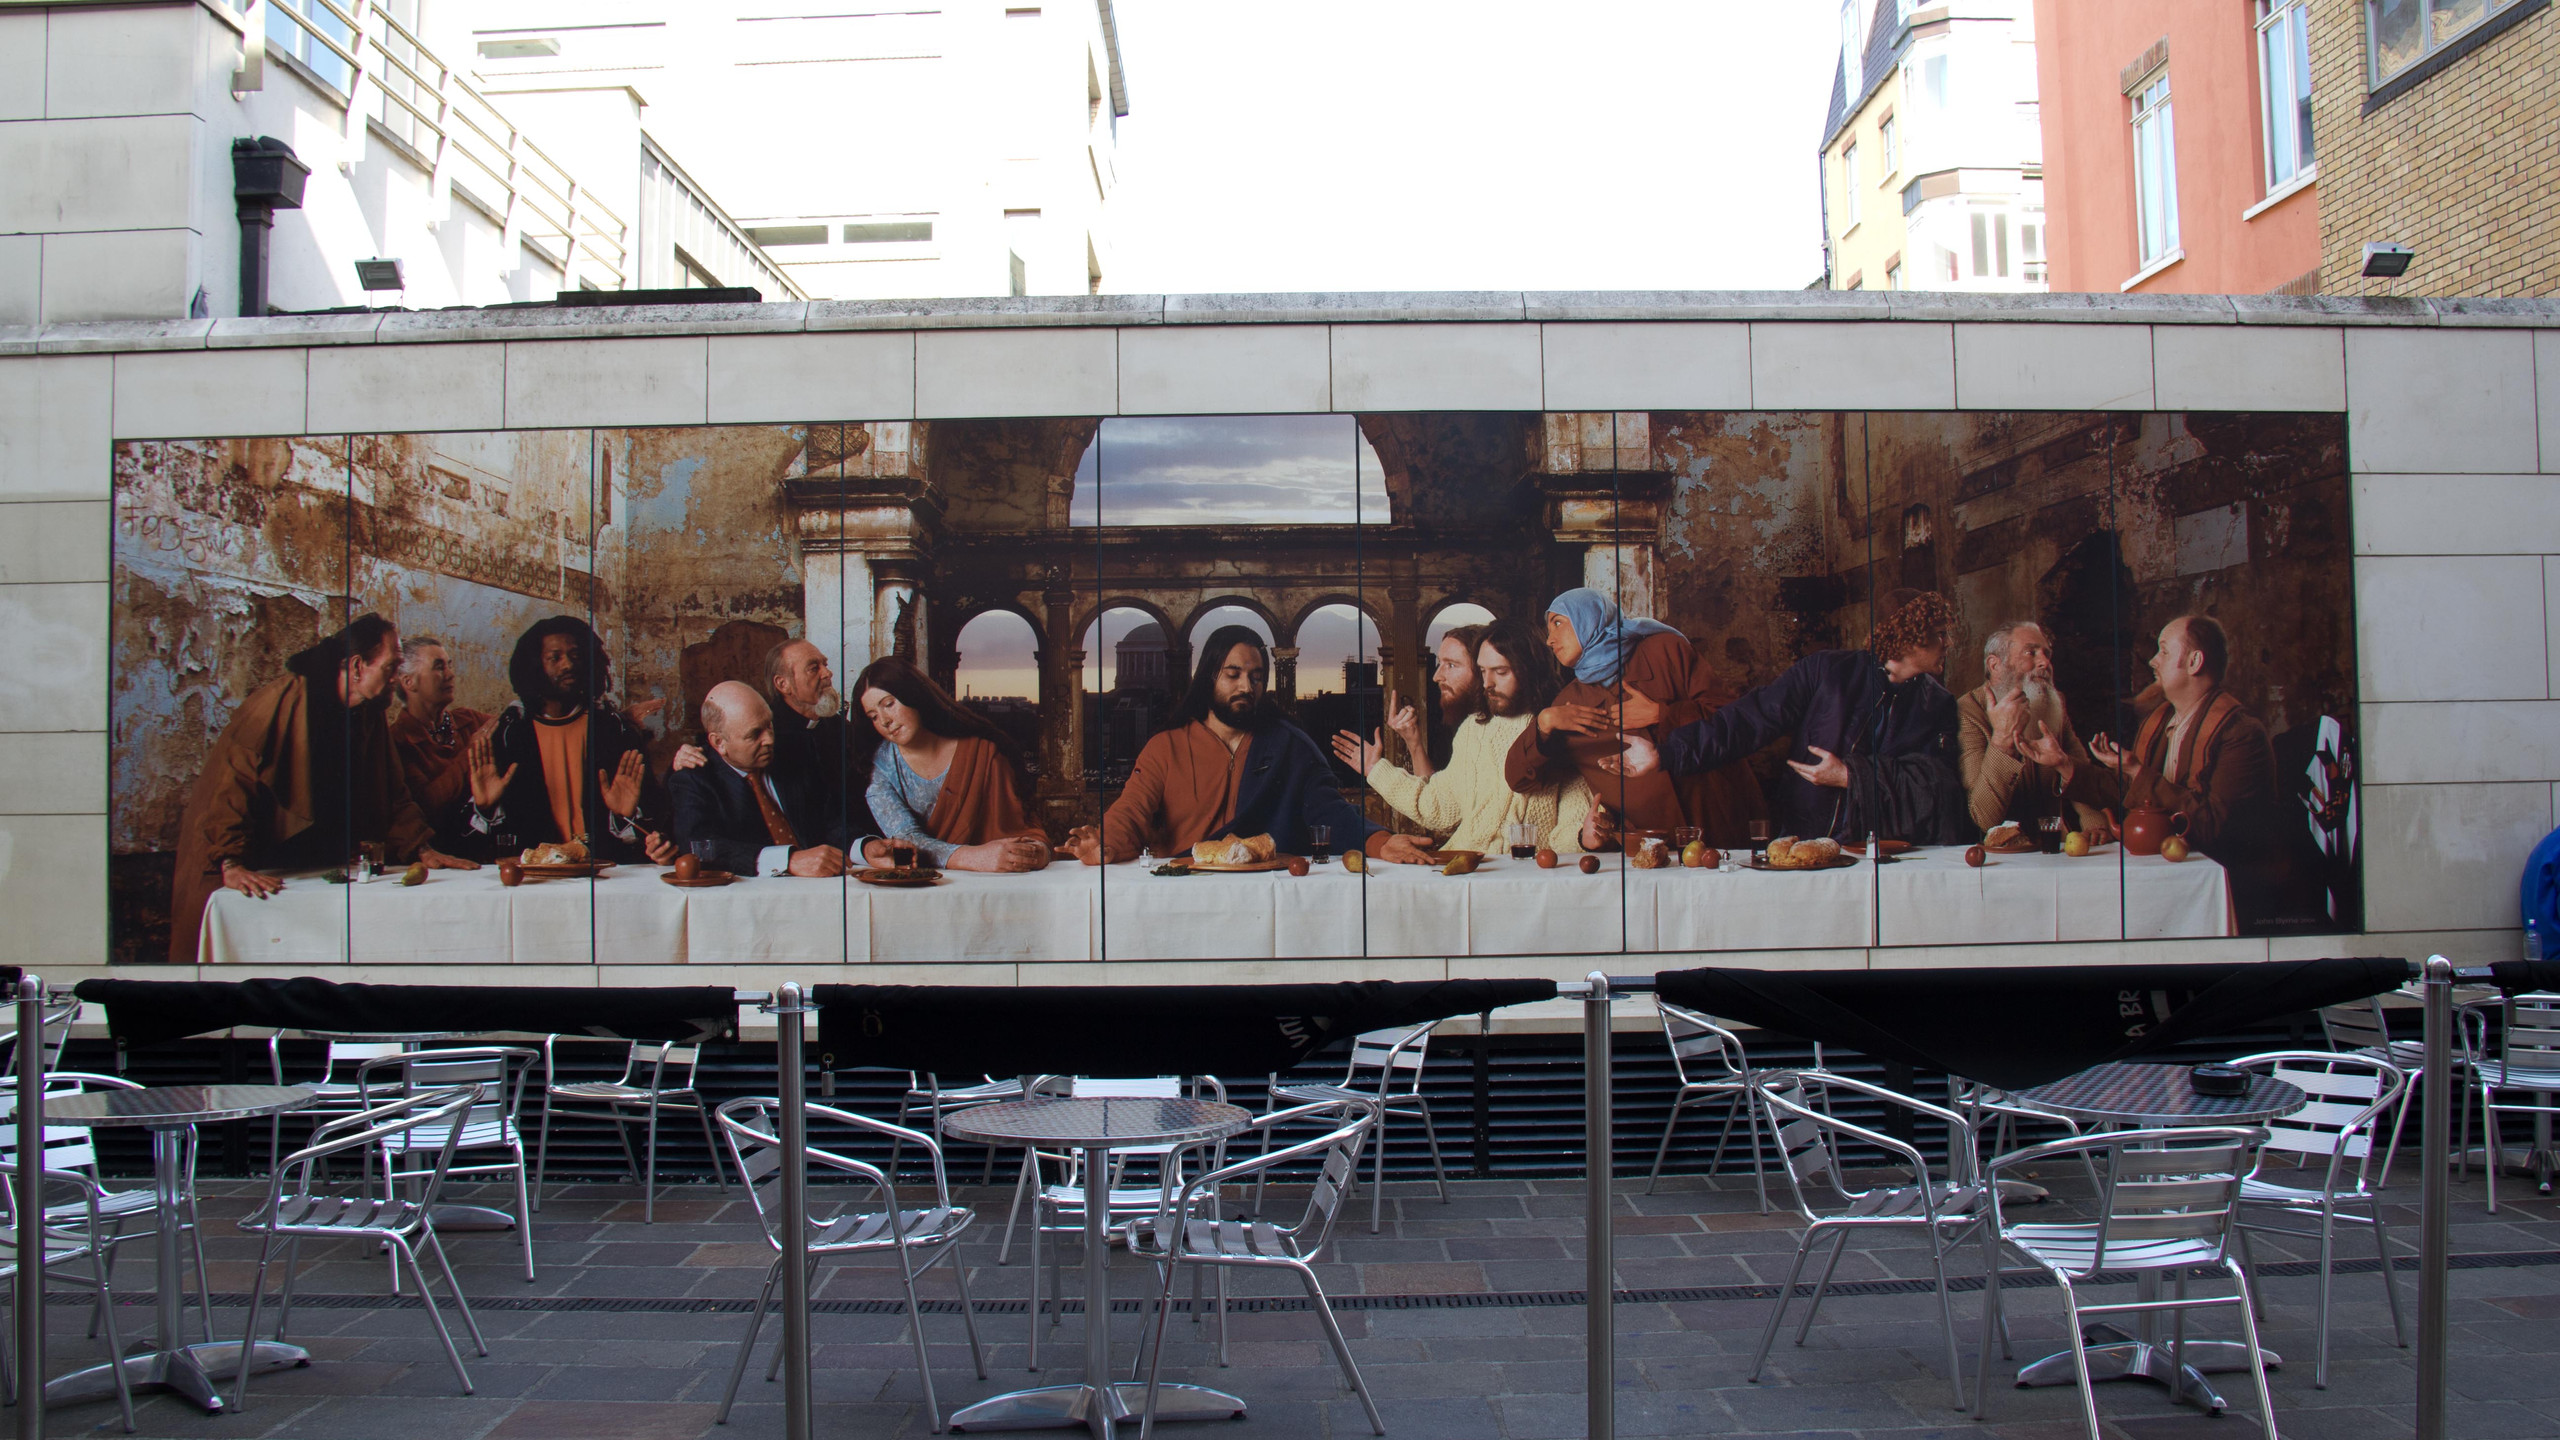 Dublin's Last Supper